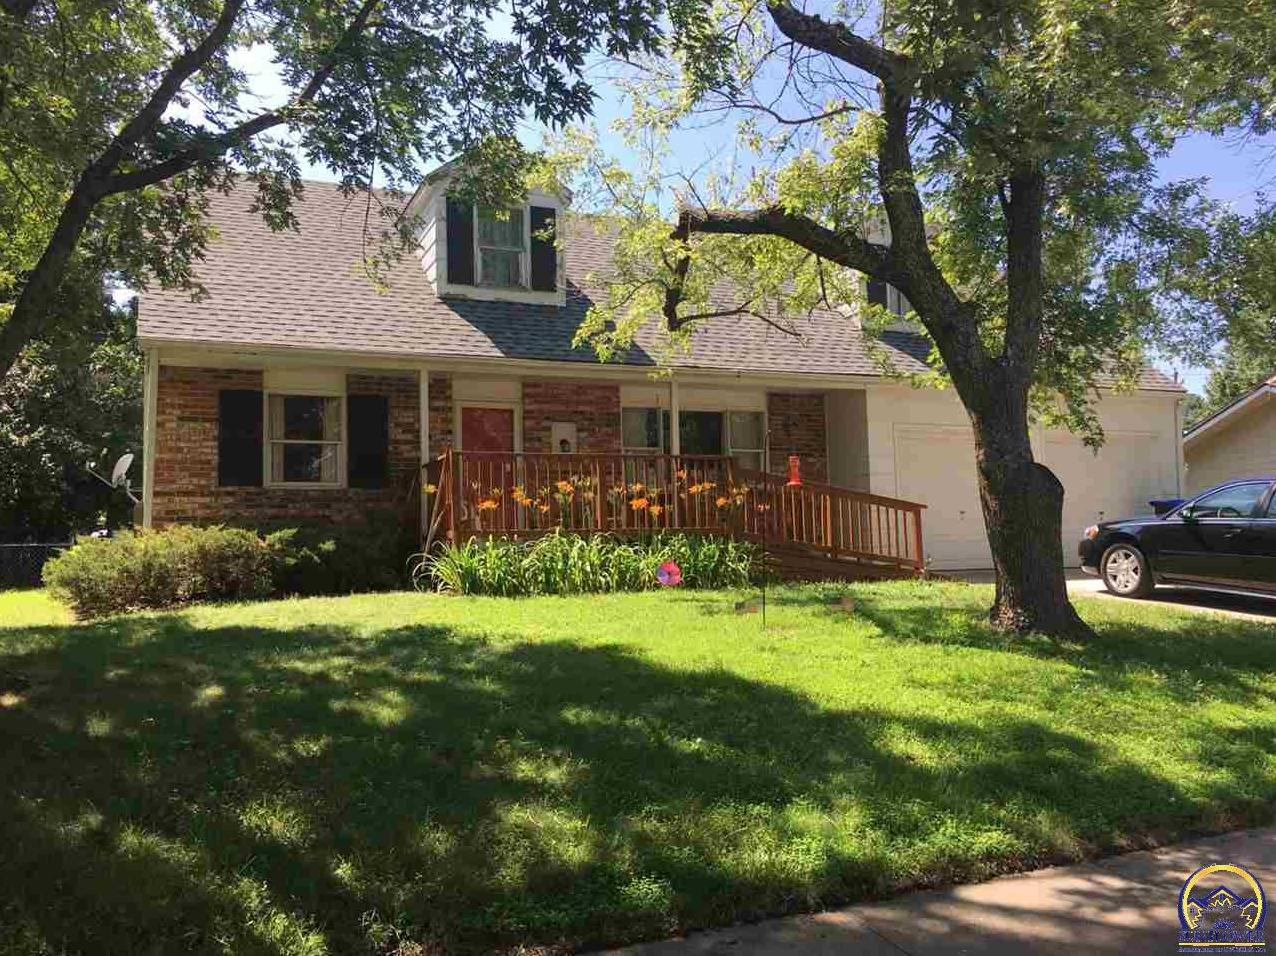 Photo of 3329 James ST Topeka KS 66614